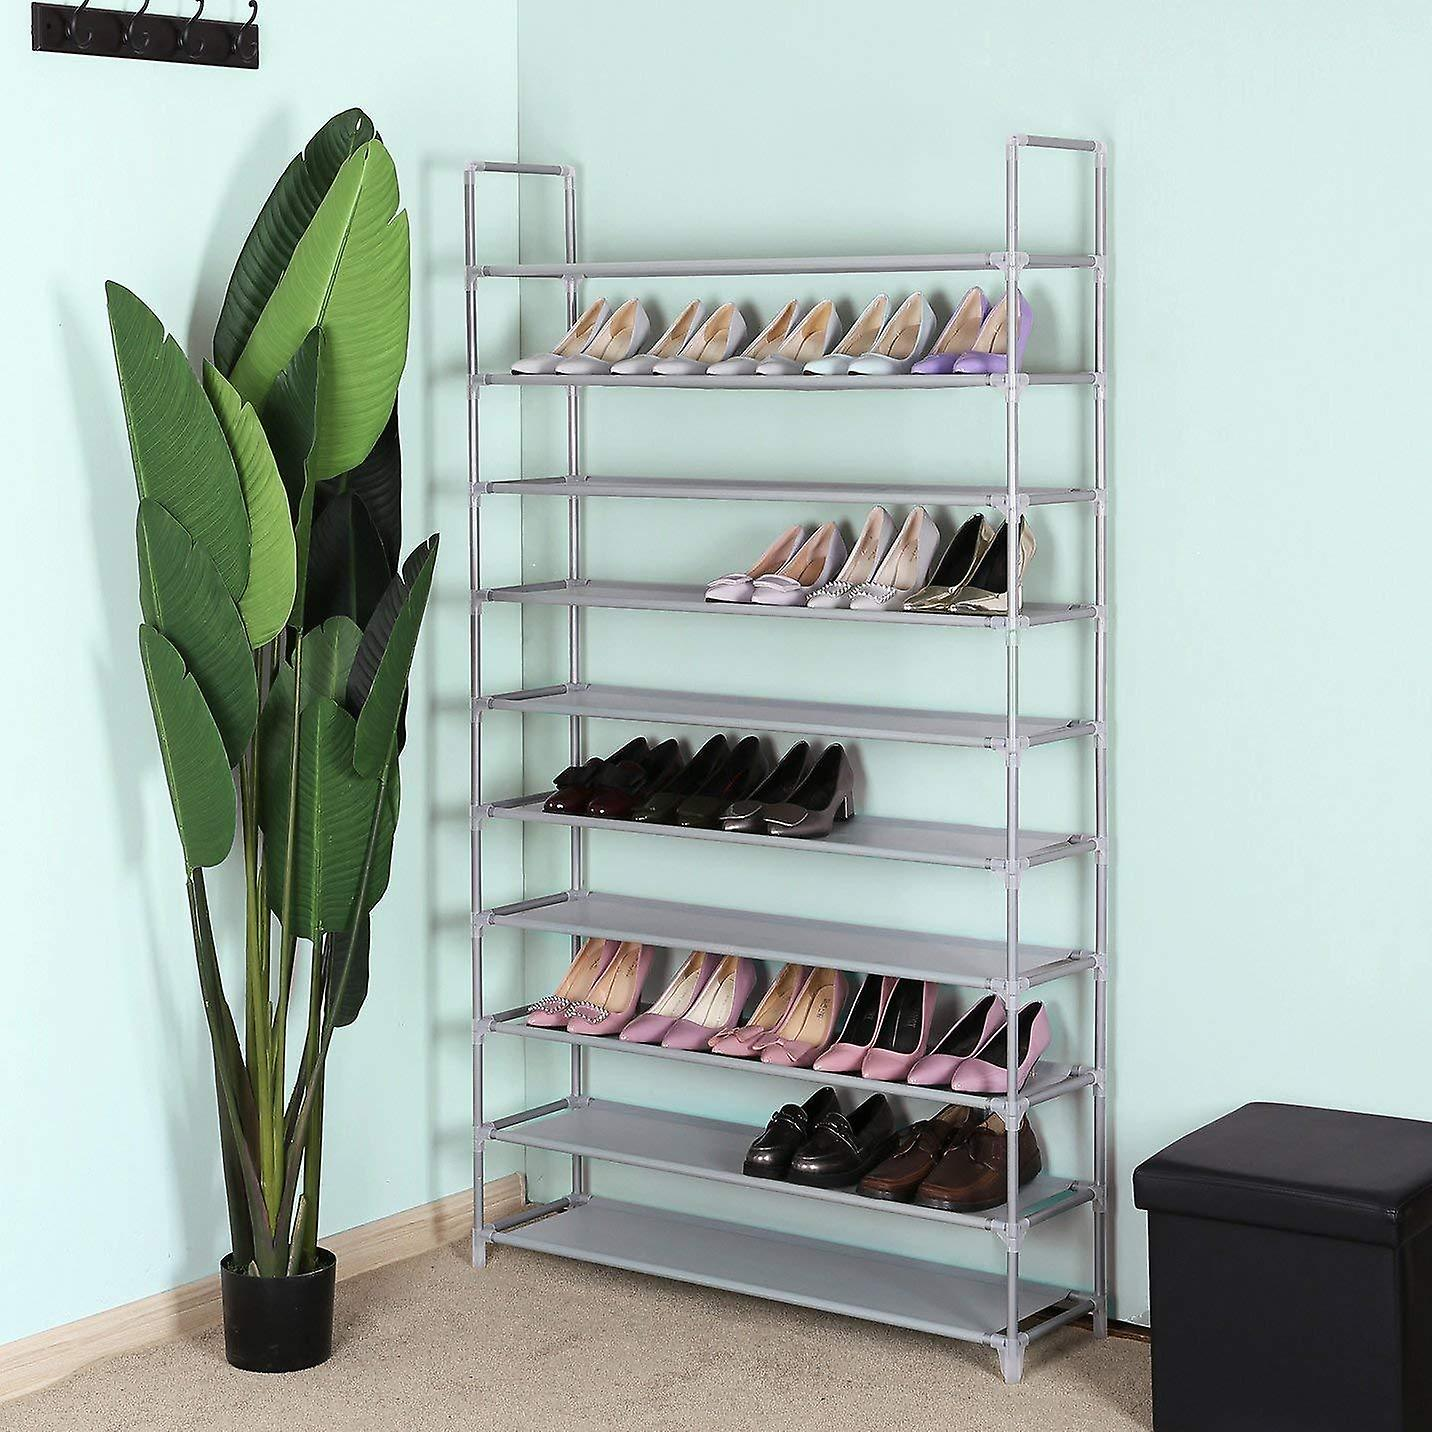 10-layer Shoe rack-metal/fabric